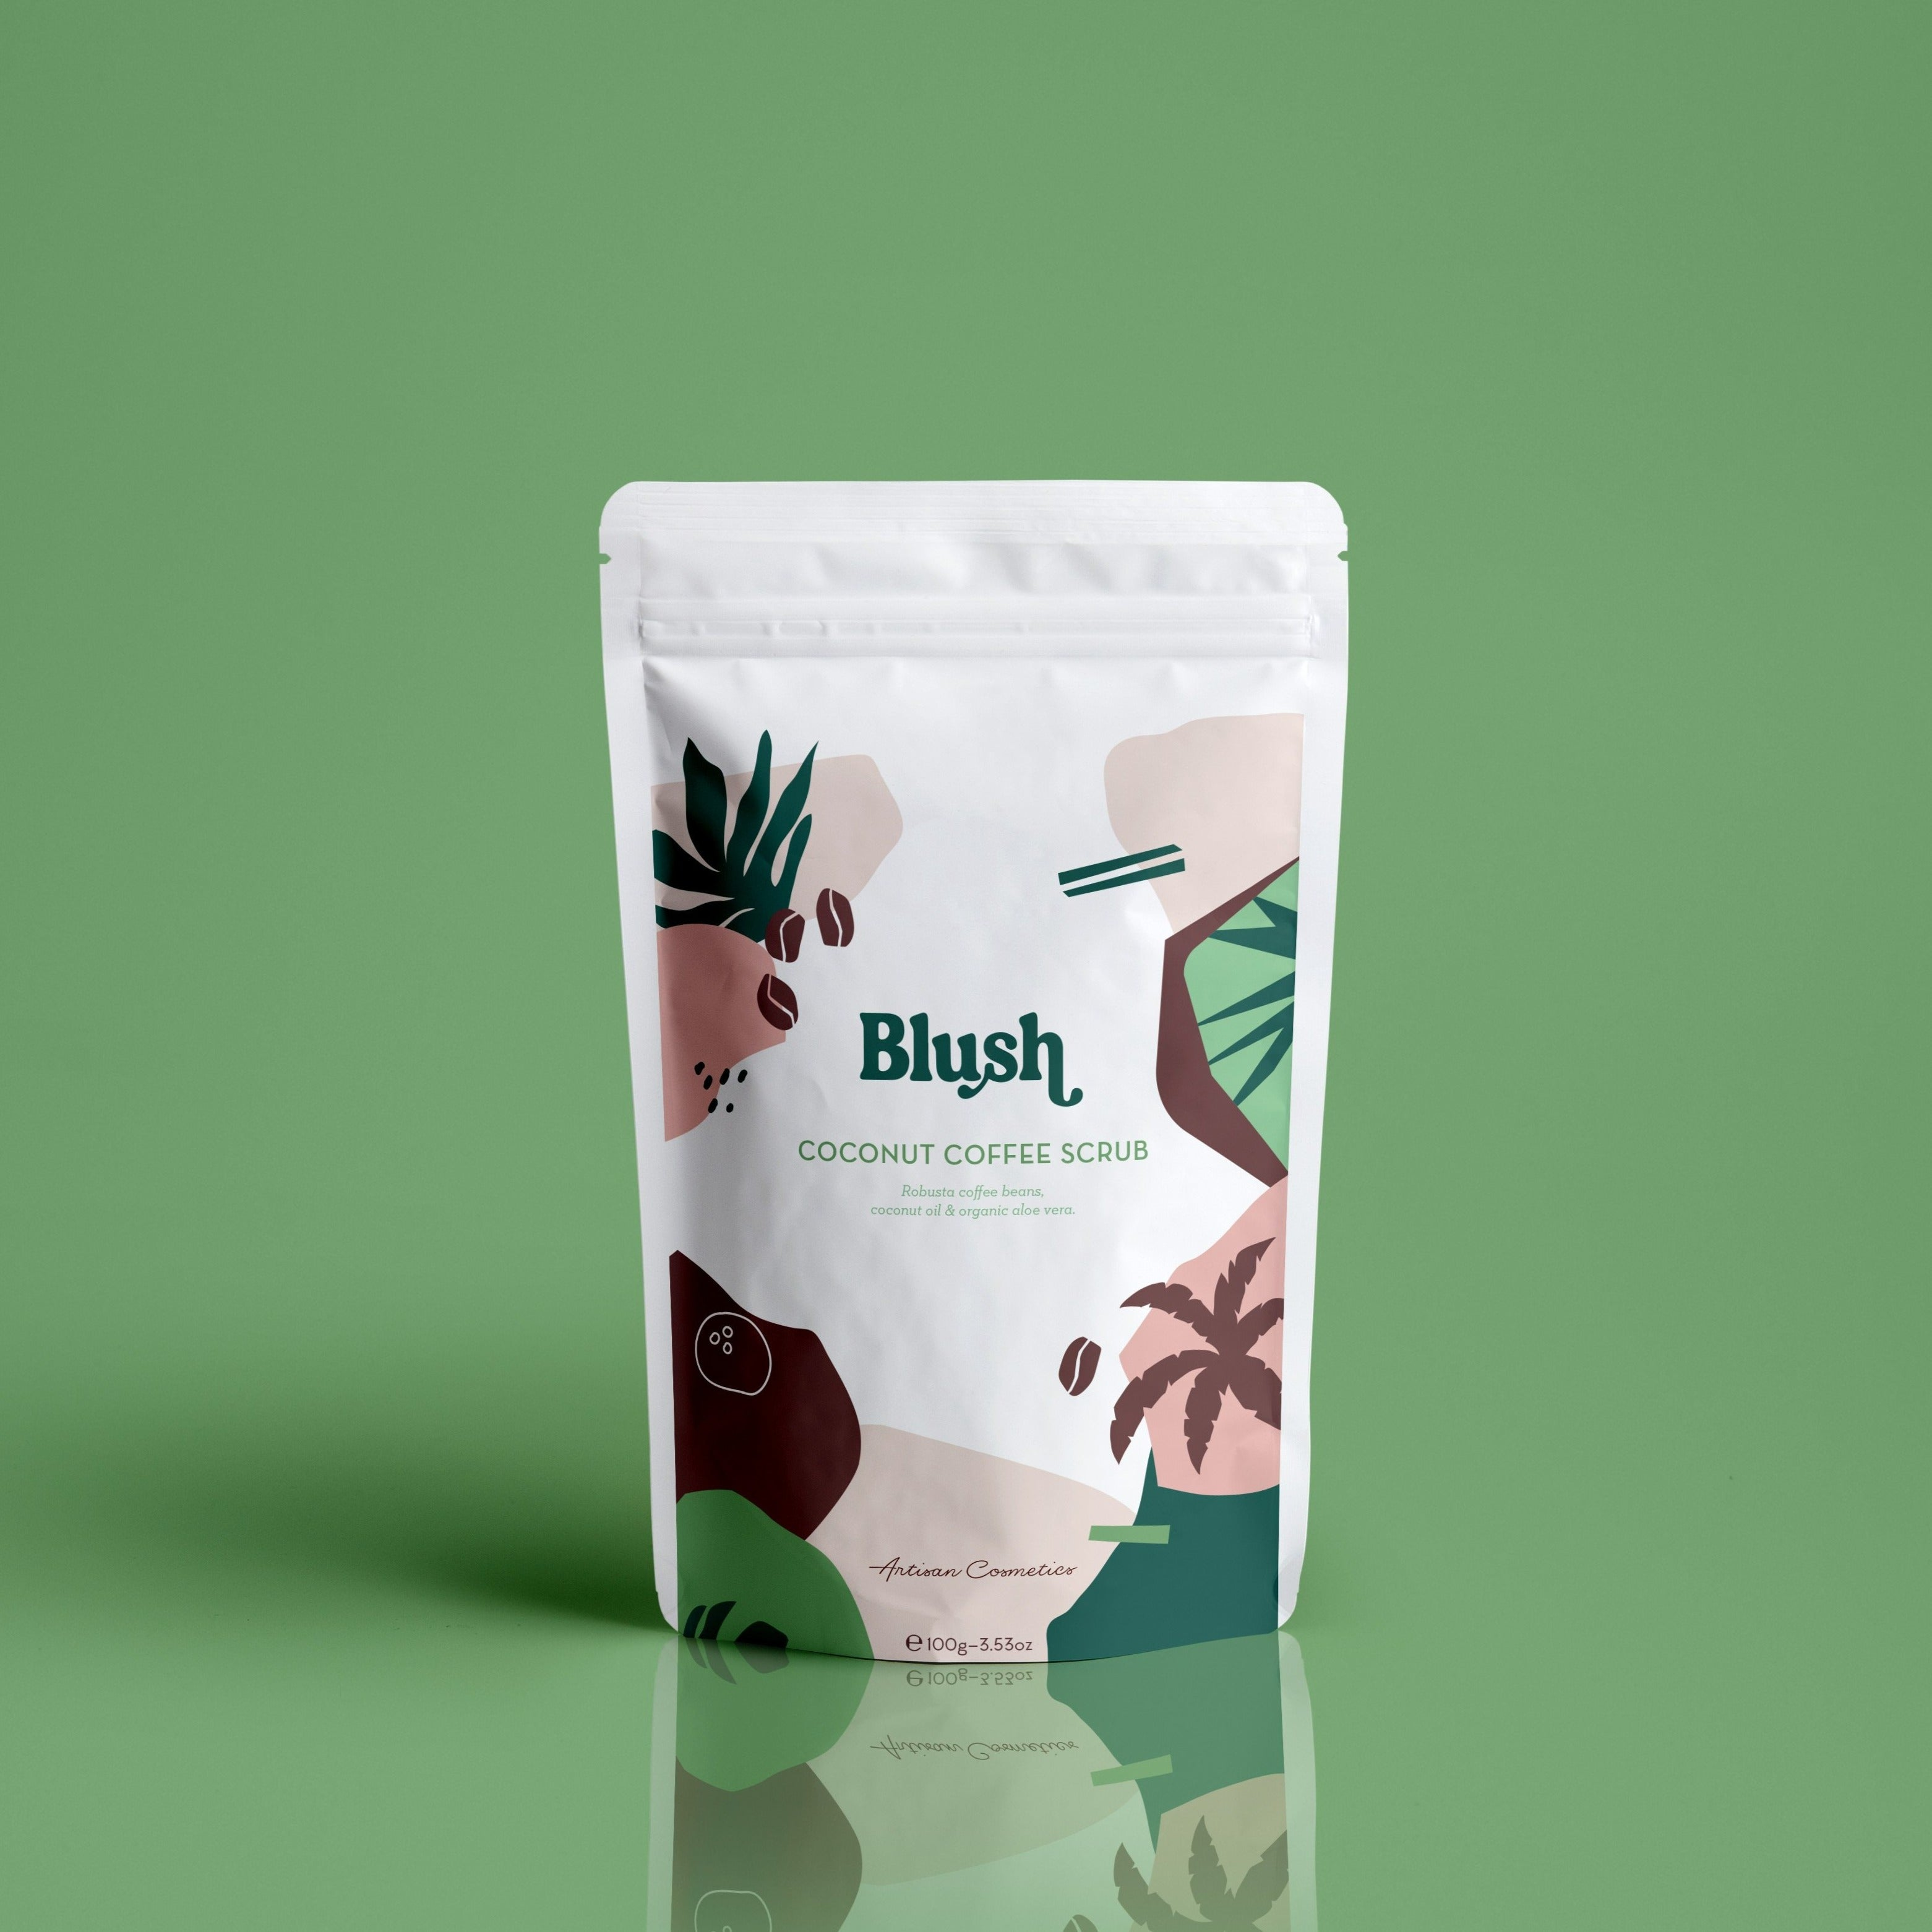 Blush Coconut Coffee Scrub